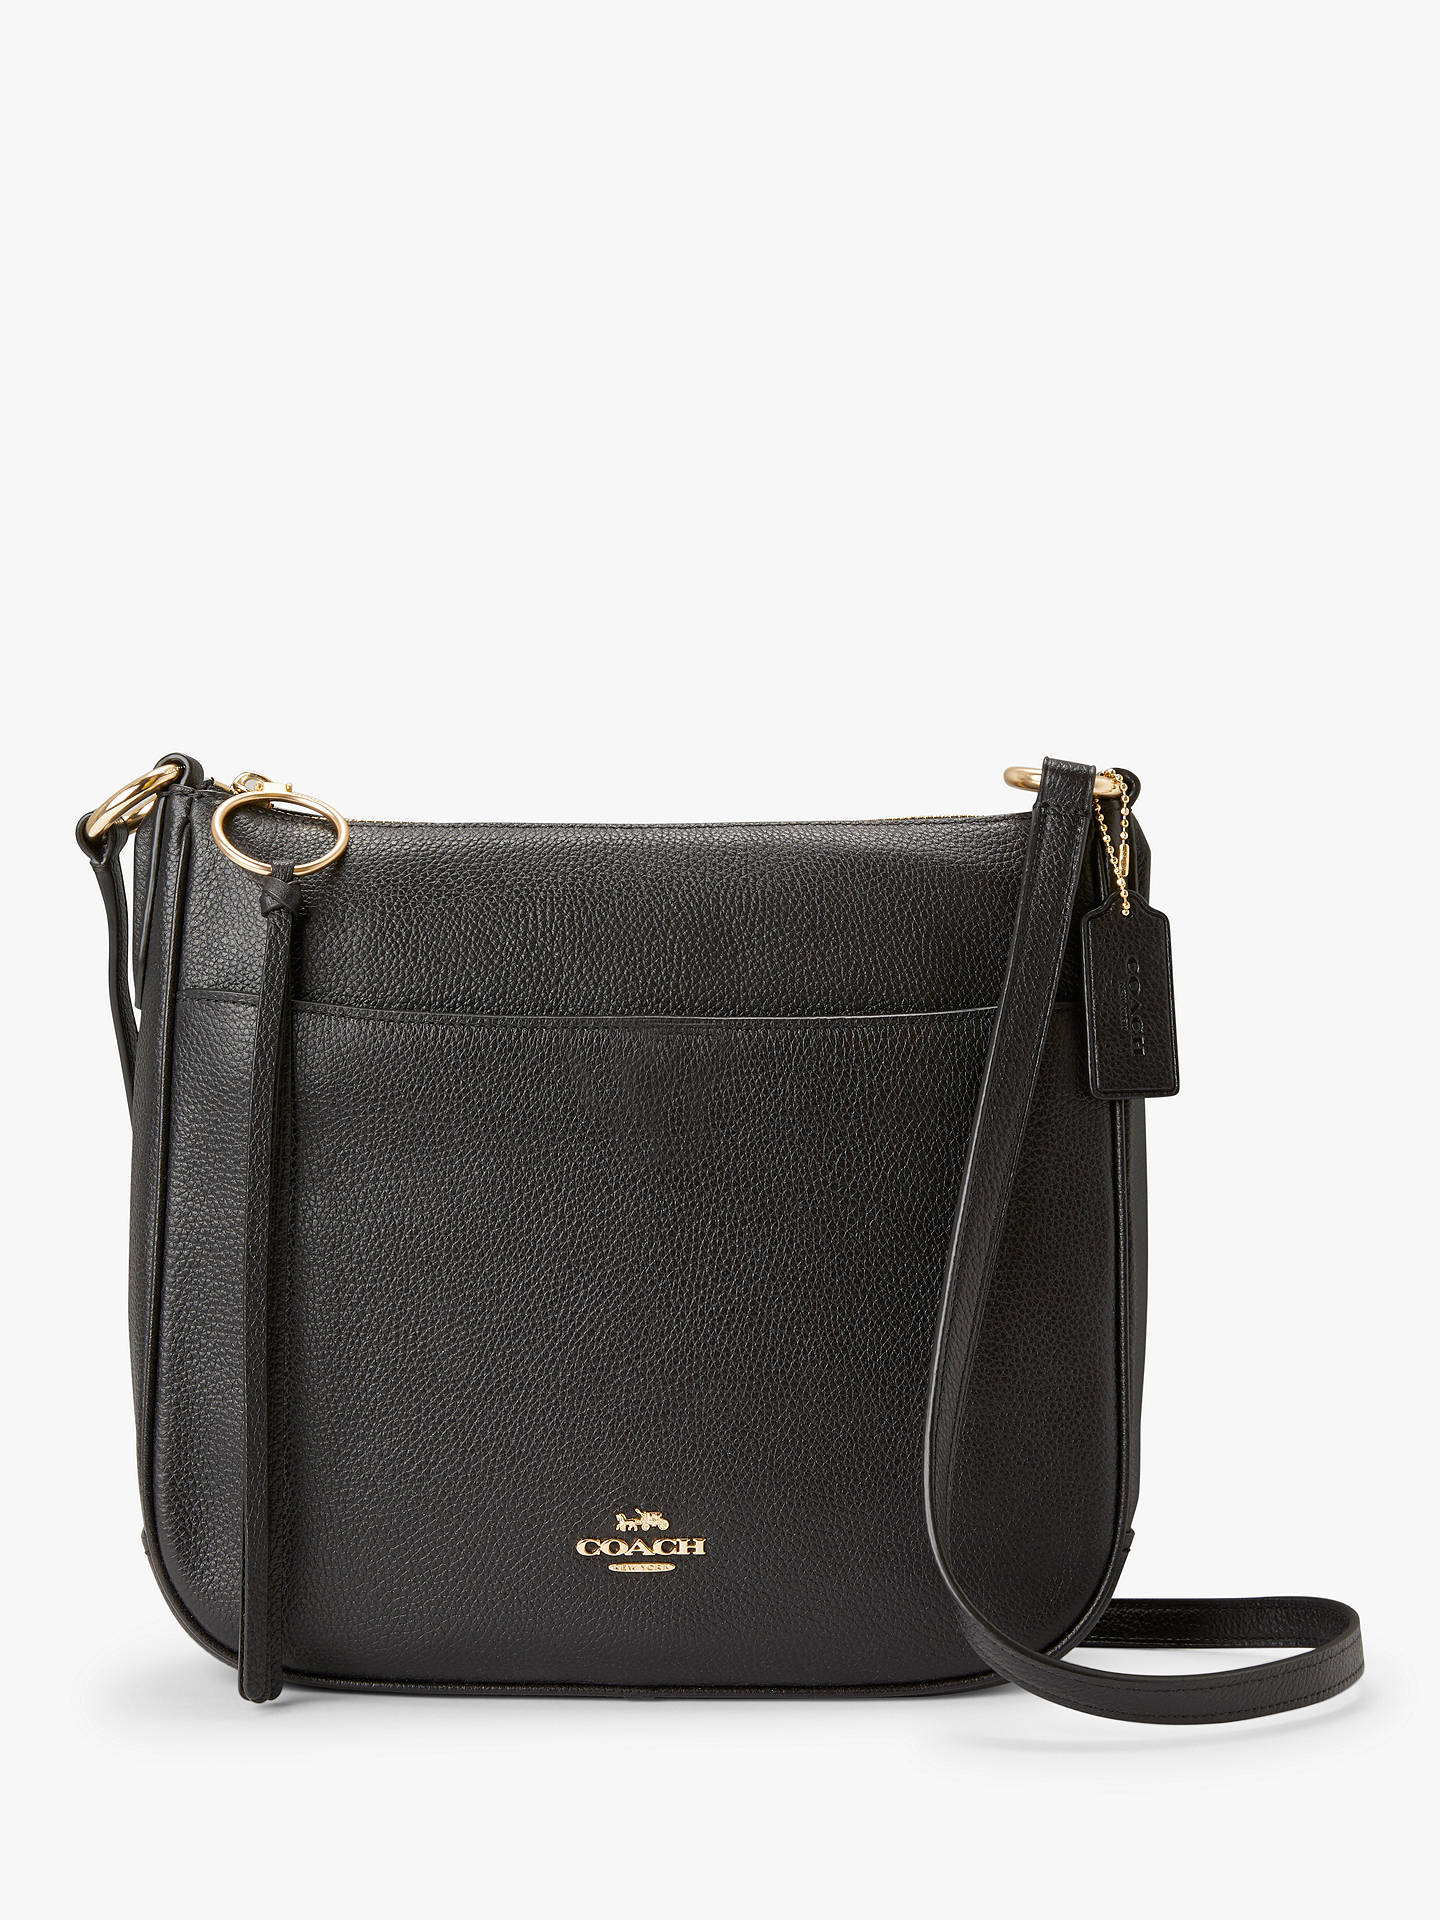 dbfdf4c3f99 Buy Coach Chaise Pebble Leather Cross Body Bag, Black Online at johnlewis.com  ...